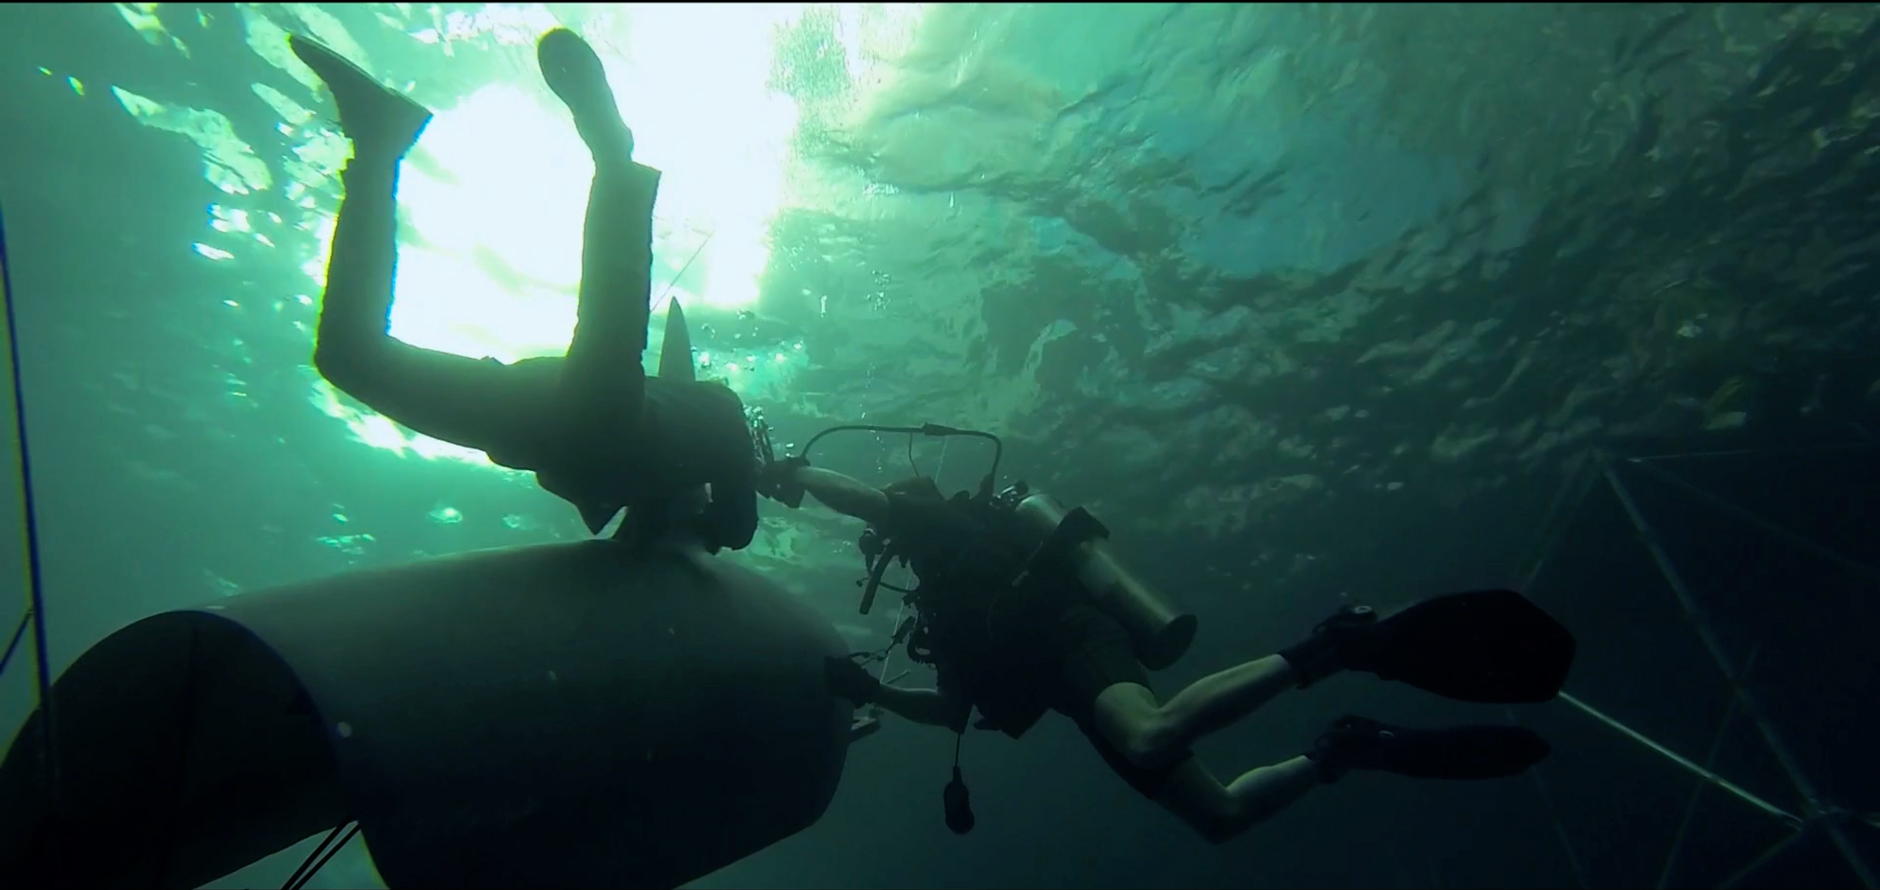 MG Action, Martin, Goeres, Safety Diving